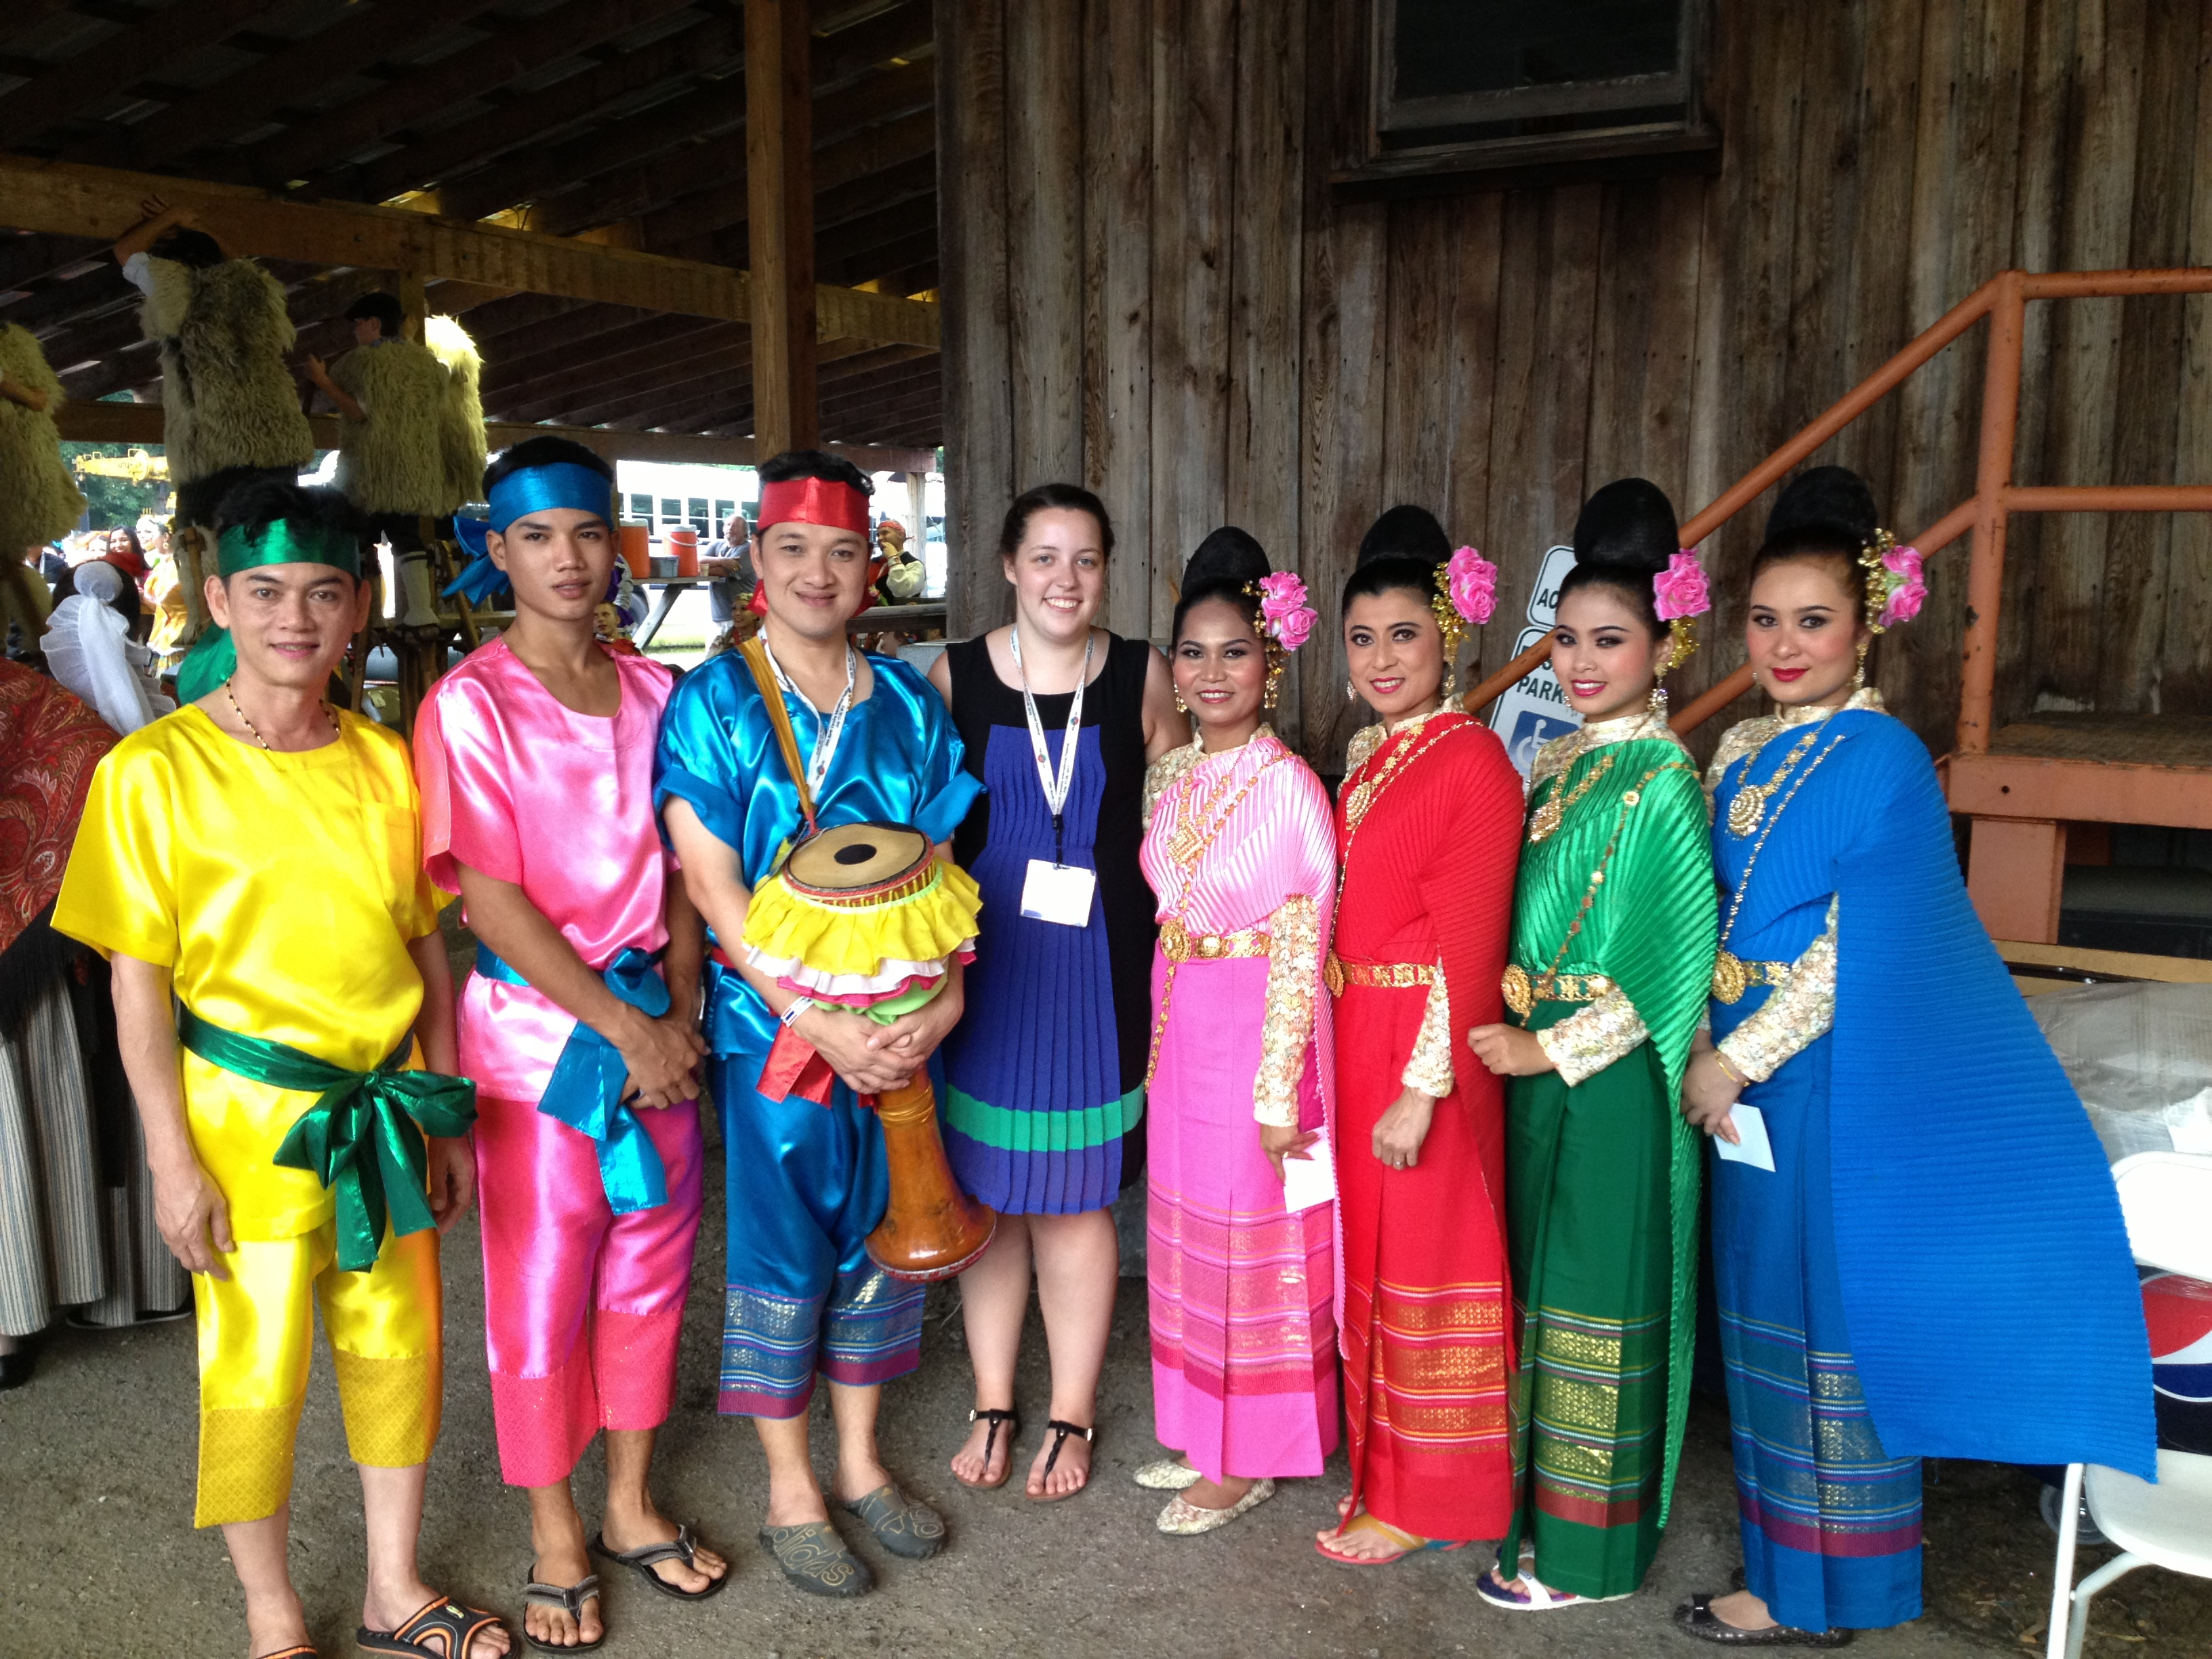 Elizabeth Burson, Folkmoot Programmer with Thai Dance Group